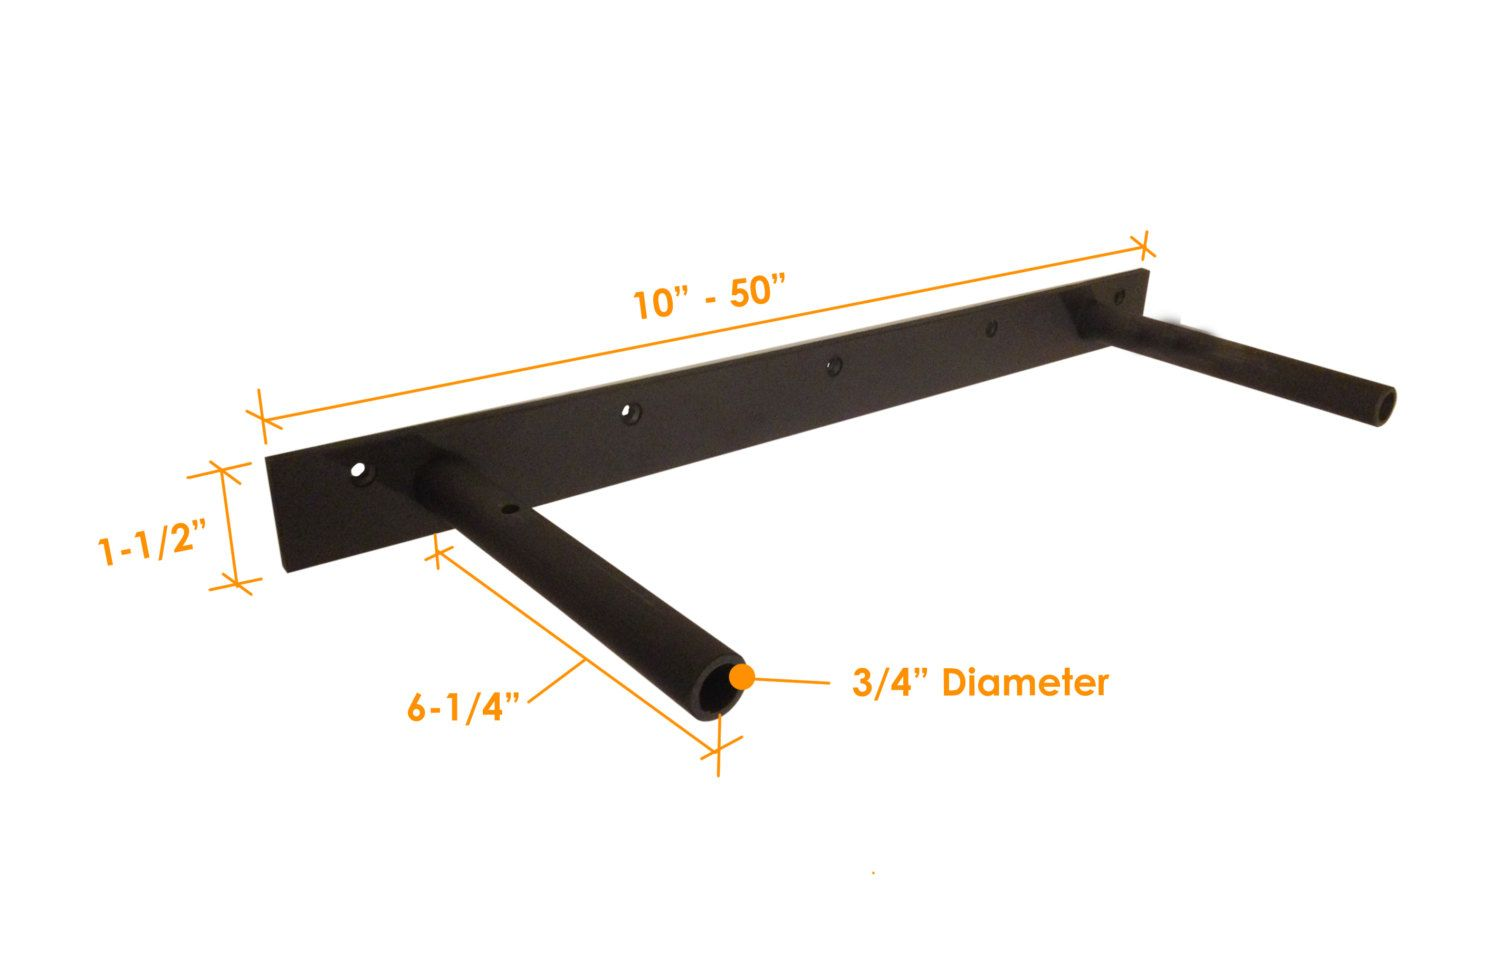 floating shelf brackets steel heavy duty from concealed hidden bracket silicatestudio peel and stick wood flooring height between kitchen counter upper cabinets plastic stacking